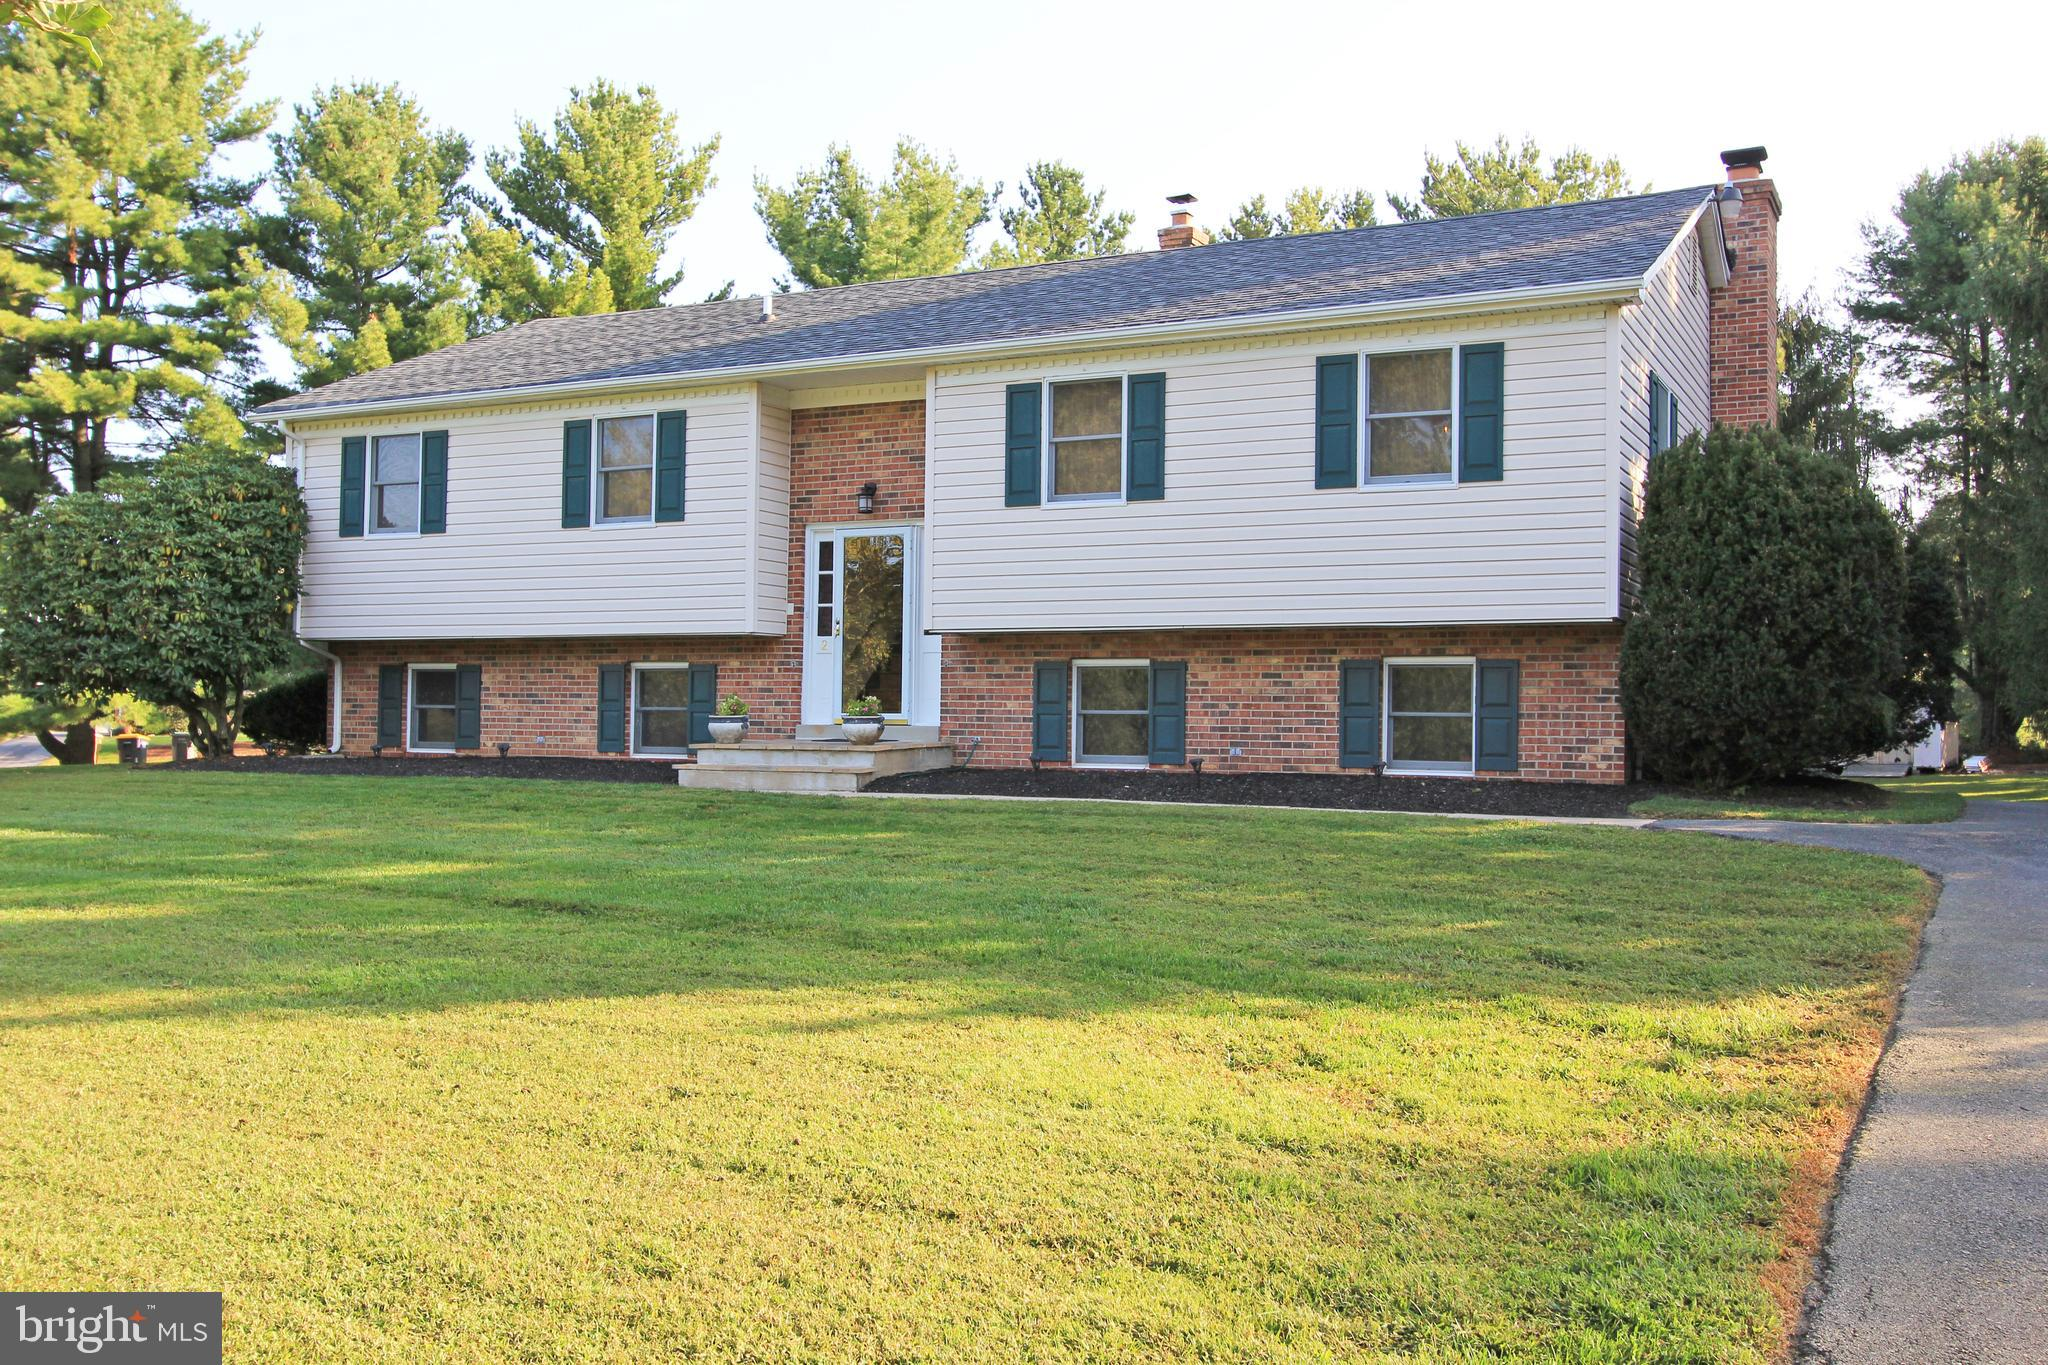 Pack your bags and move into this beautiful renovated raised ranch. This RC Peoples home is situated